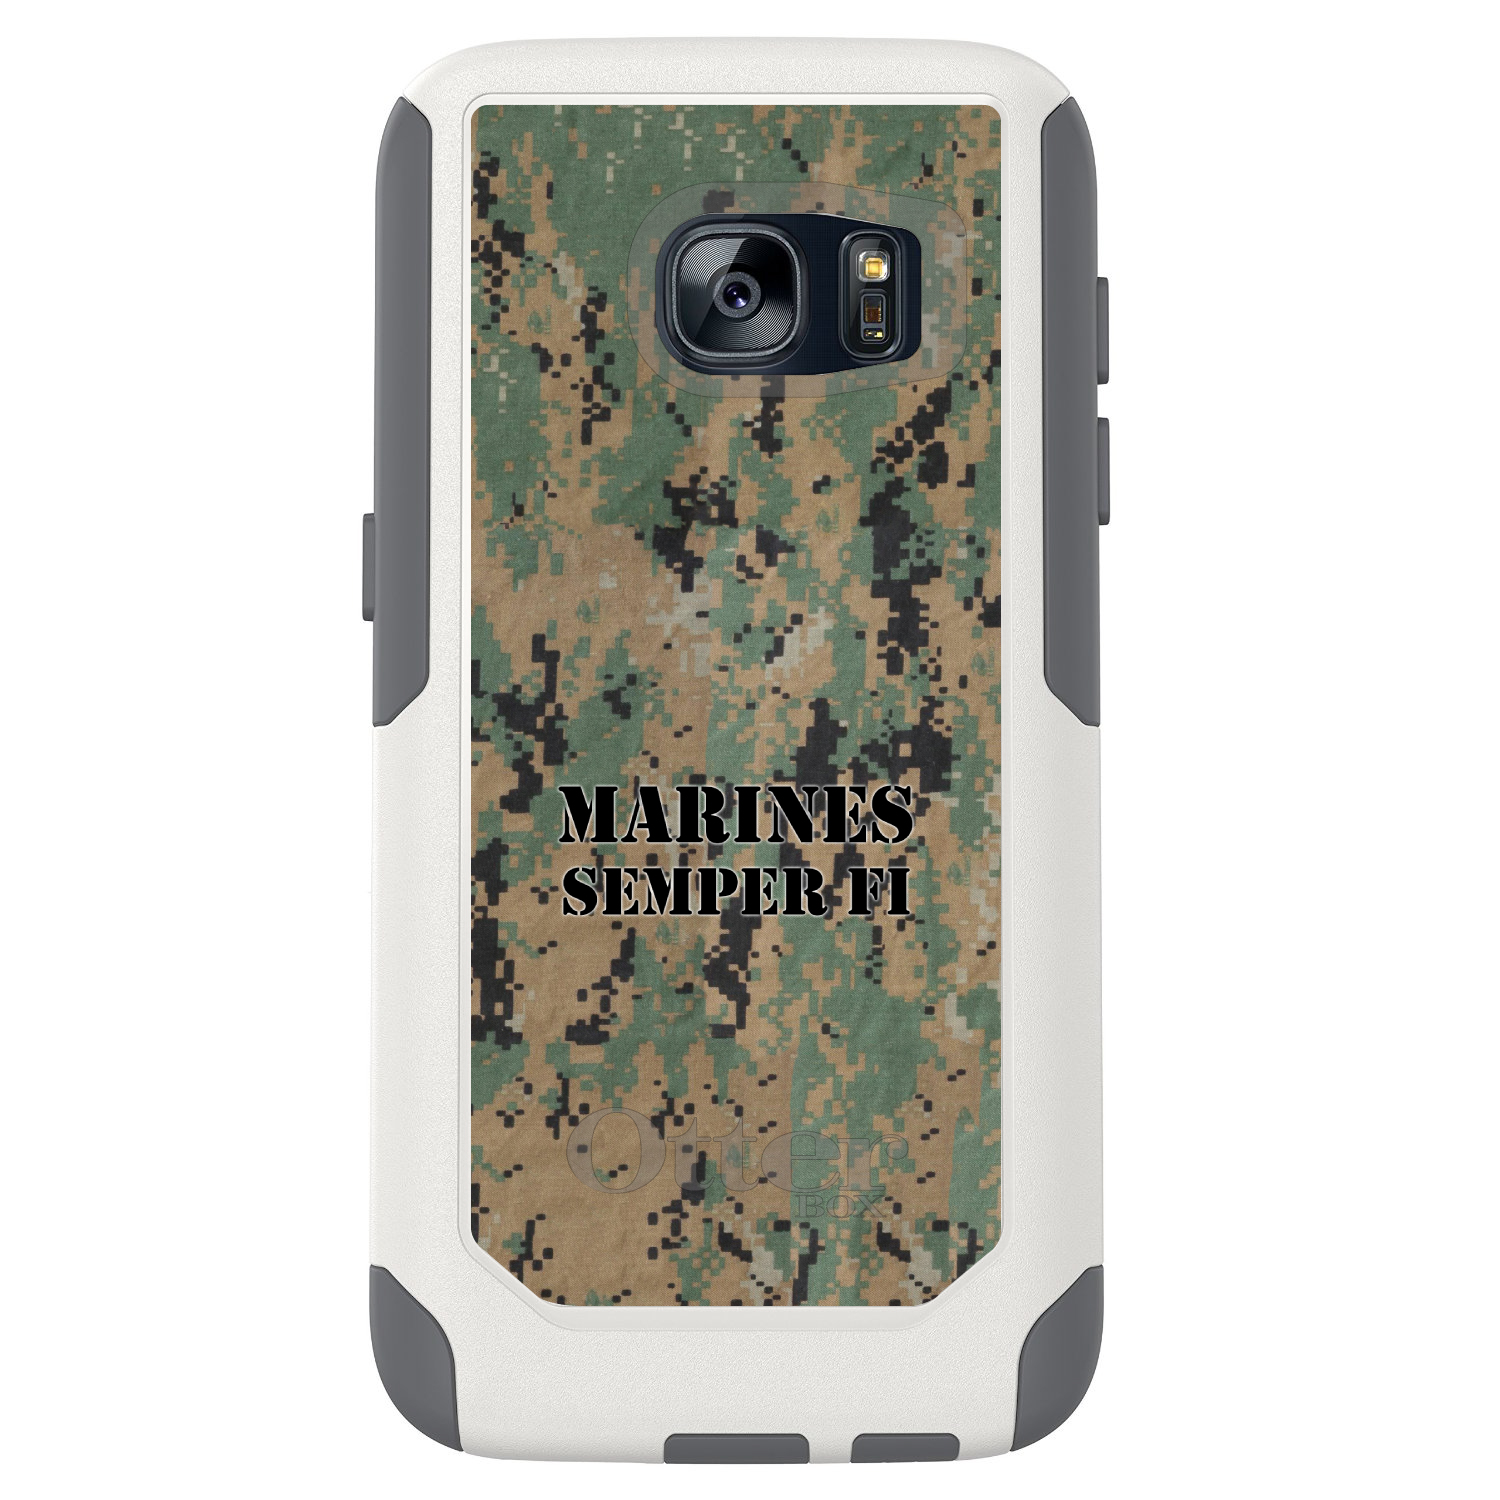 DistinctInk™ Custom White OtterBox Commuter Series Case for Samsung Galaxy S7 - Camo Marines Semper Fi